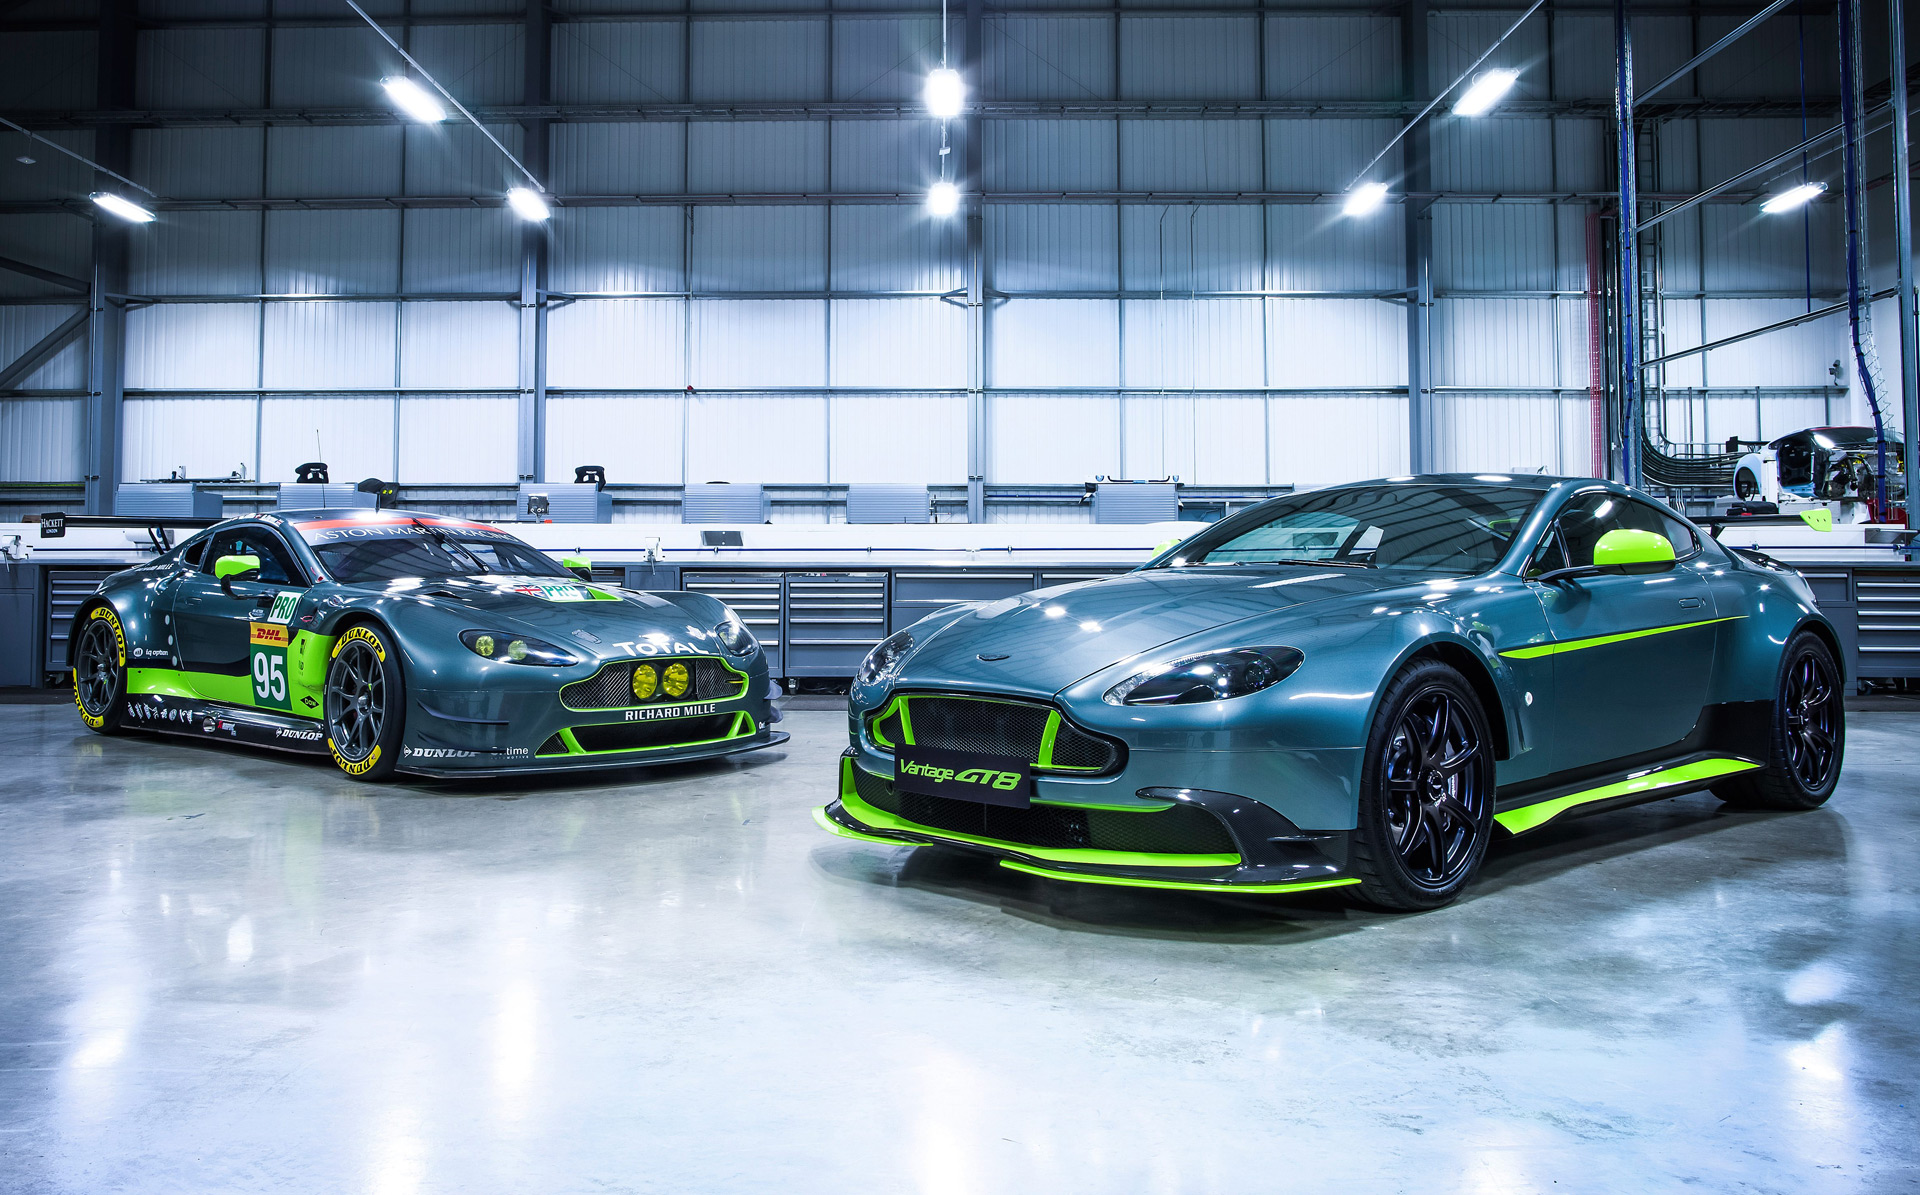 Aston Martin Gt8 >> 2017 Aston Martin Vantage Gt8 Revealed Limited To 150 Units